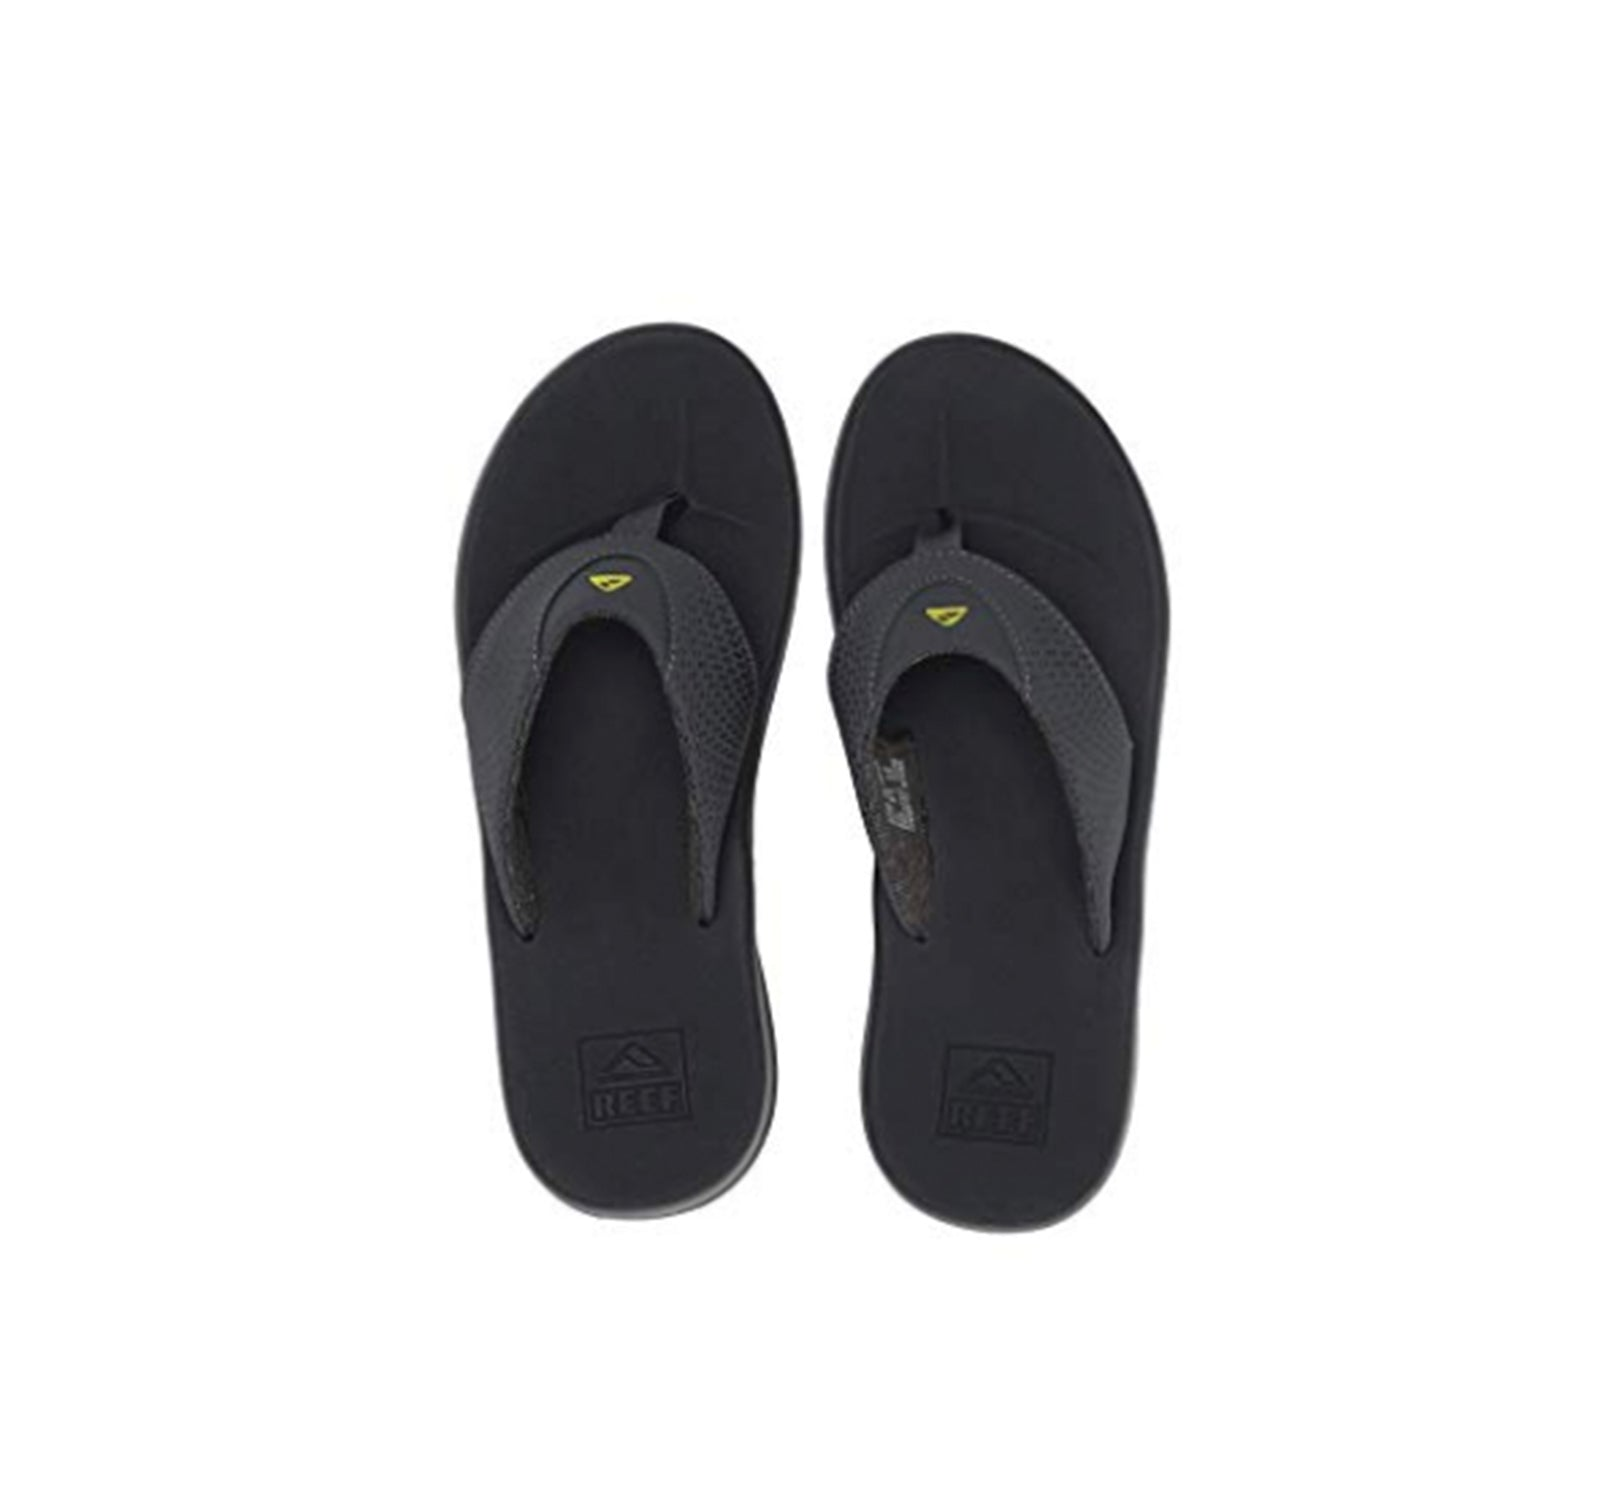 f48293dca01e Reef Rover Men s Sandals - Surf Station Store